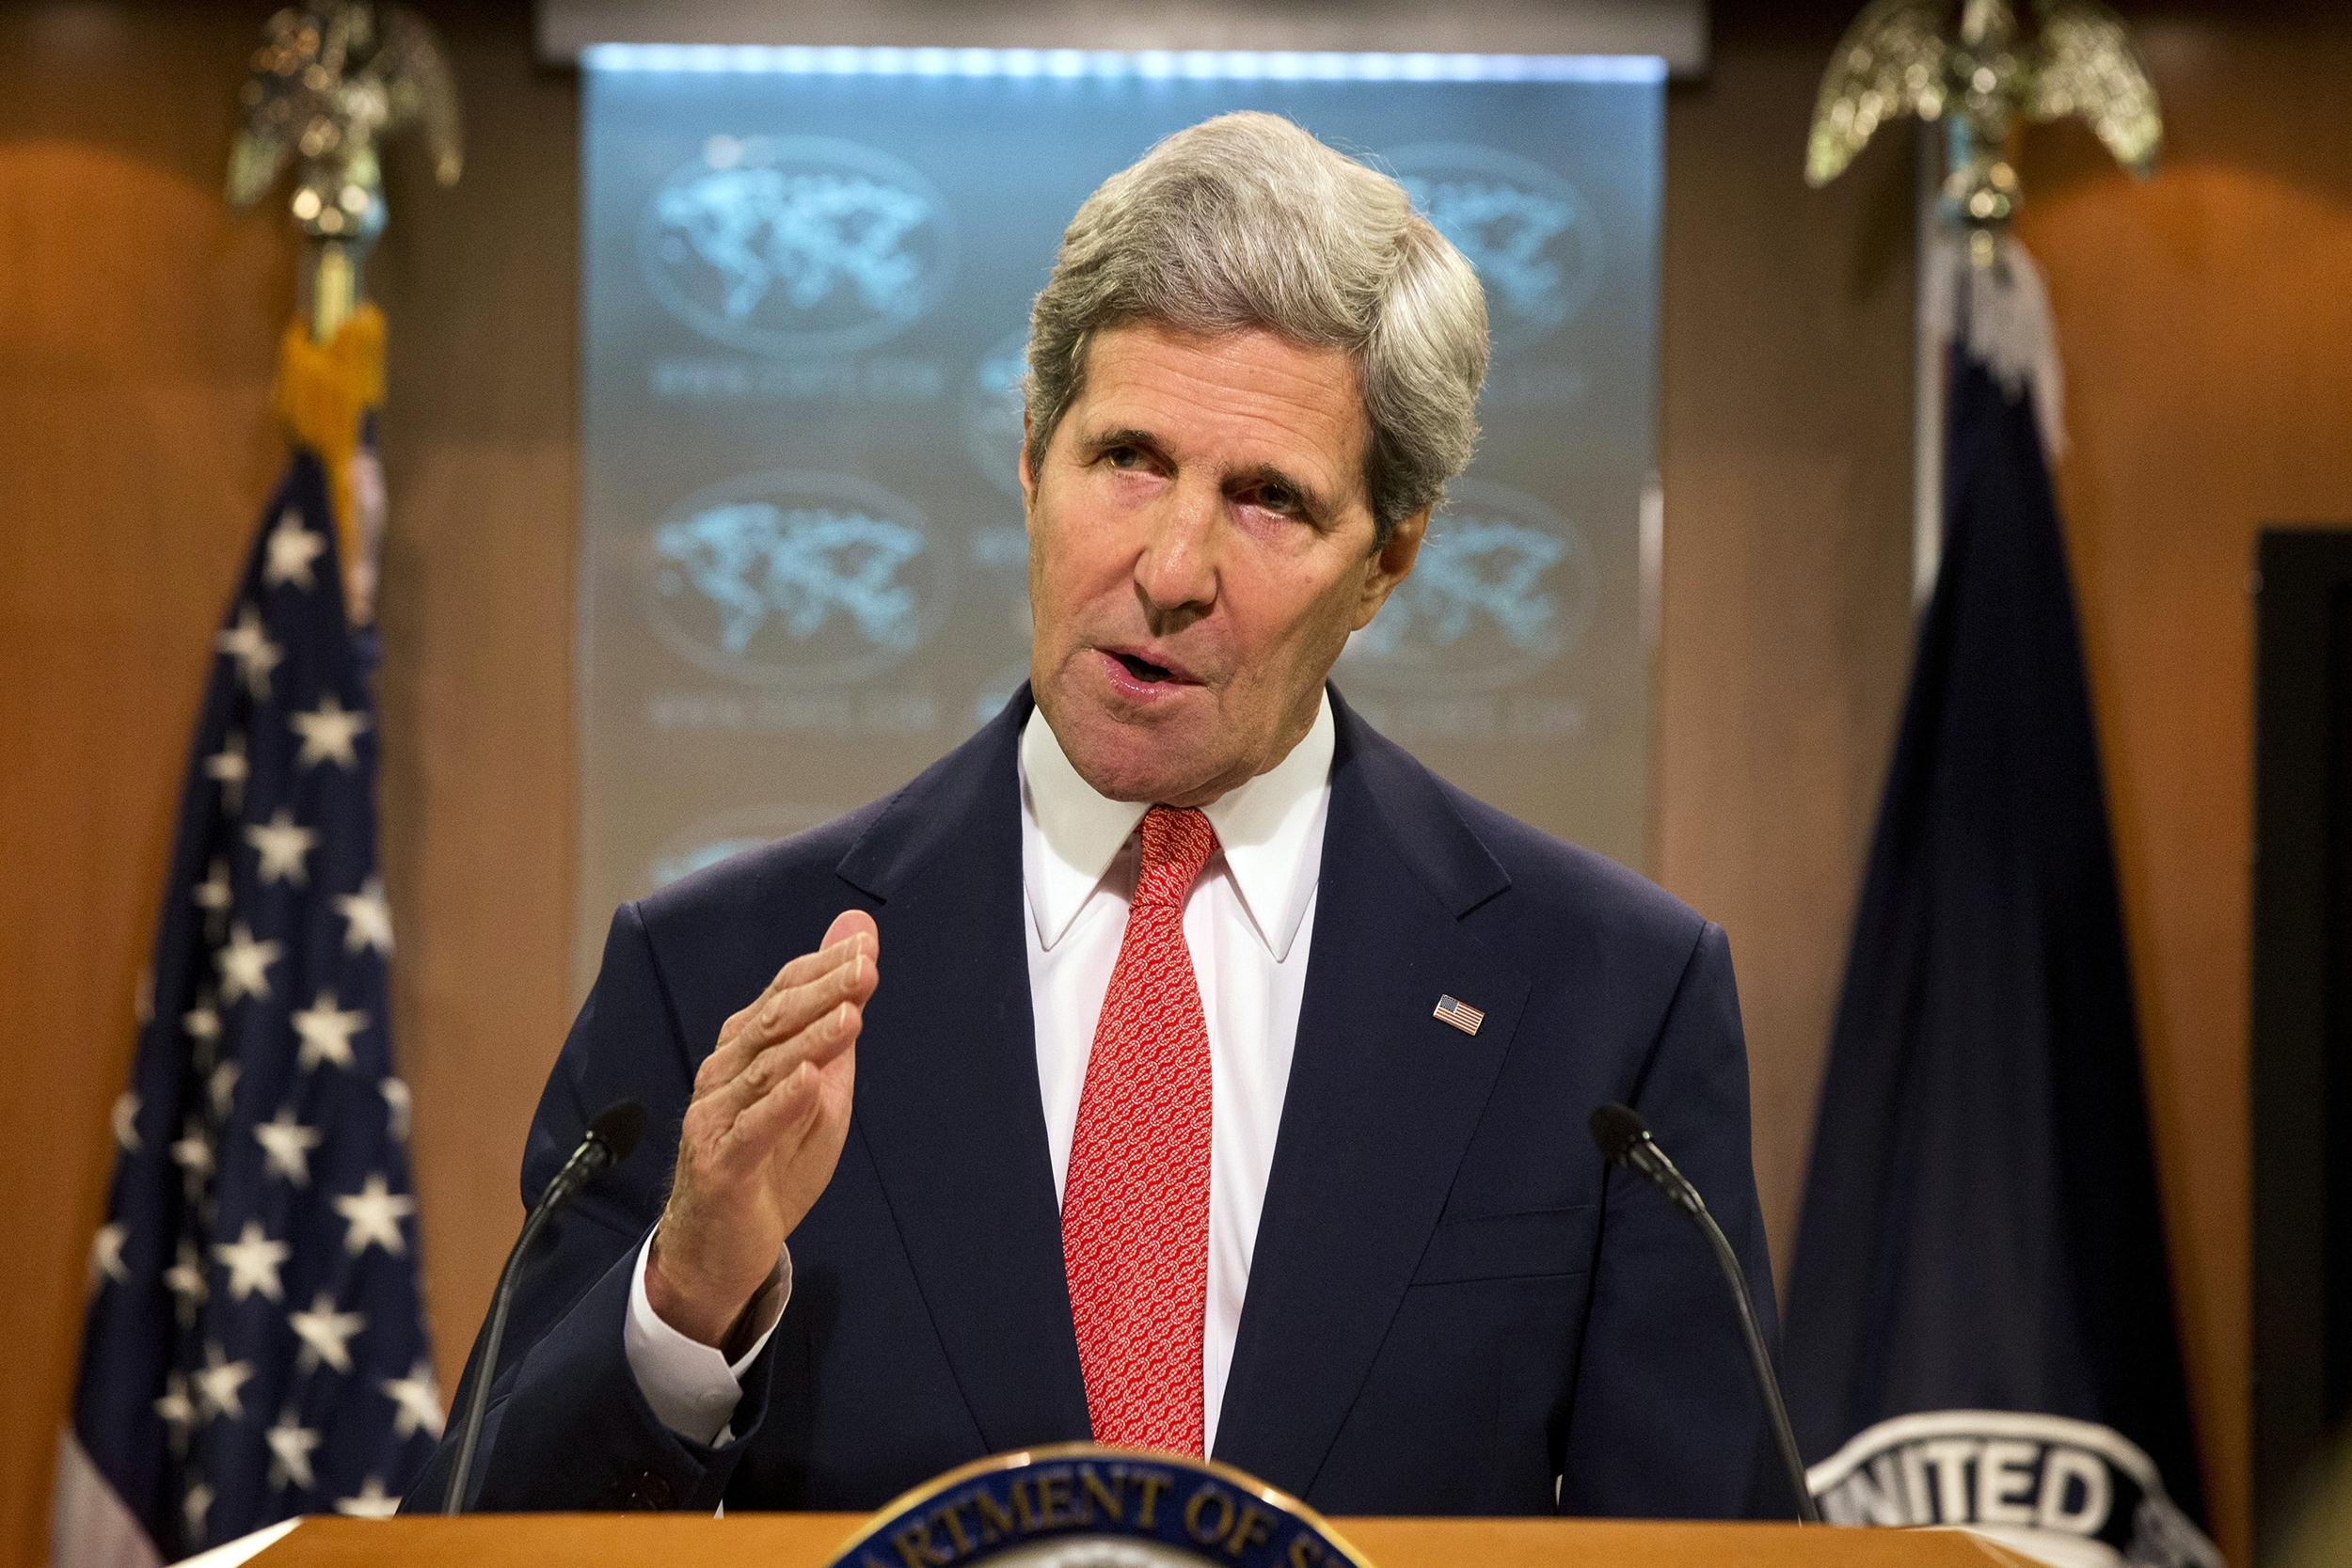 Image: Secretary of State John Kerry speaks about the situation with Ukraine and Russia